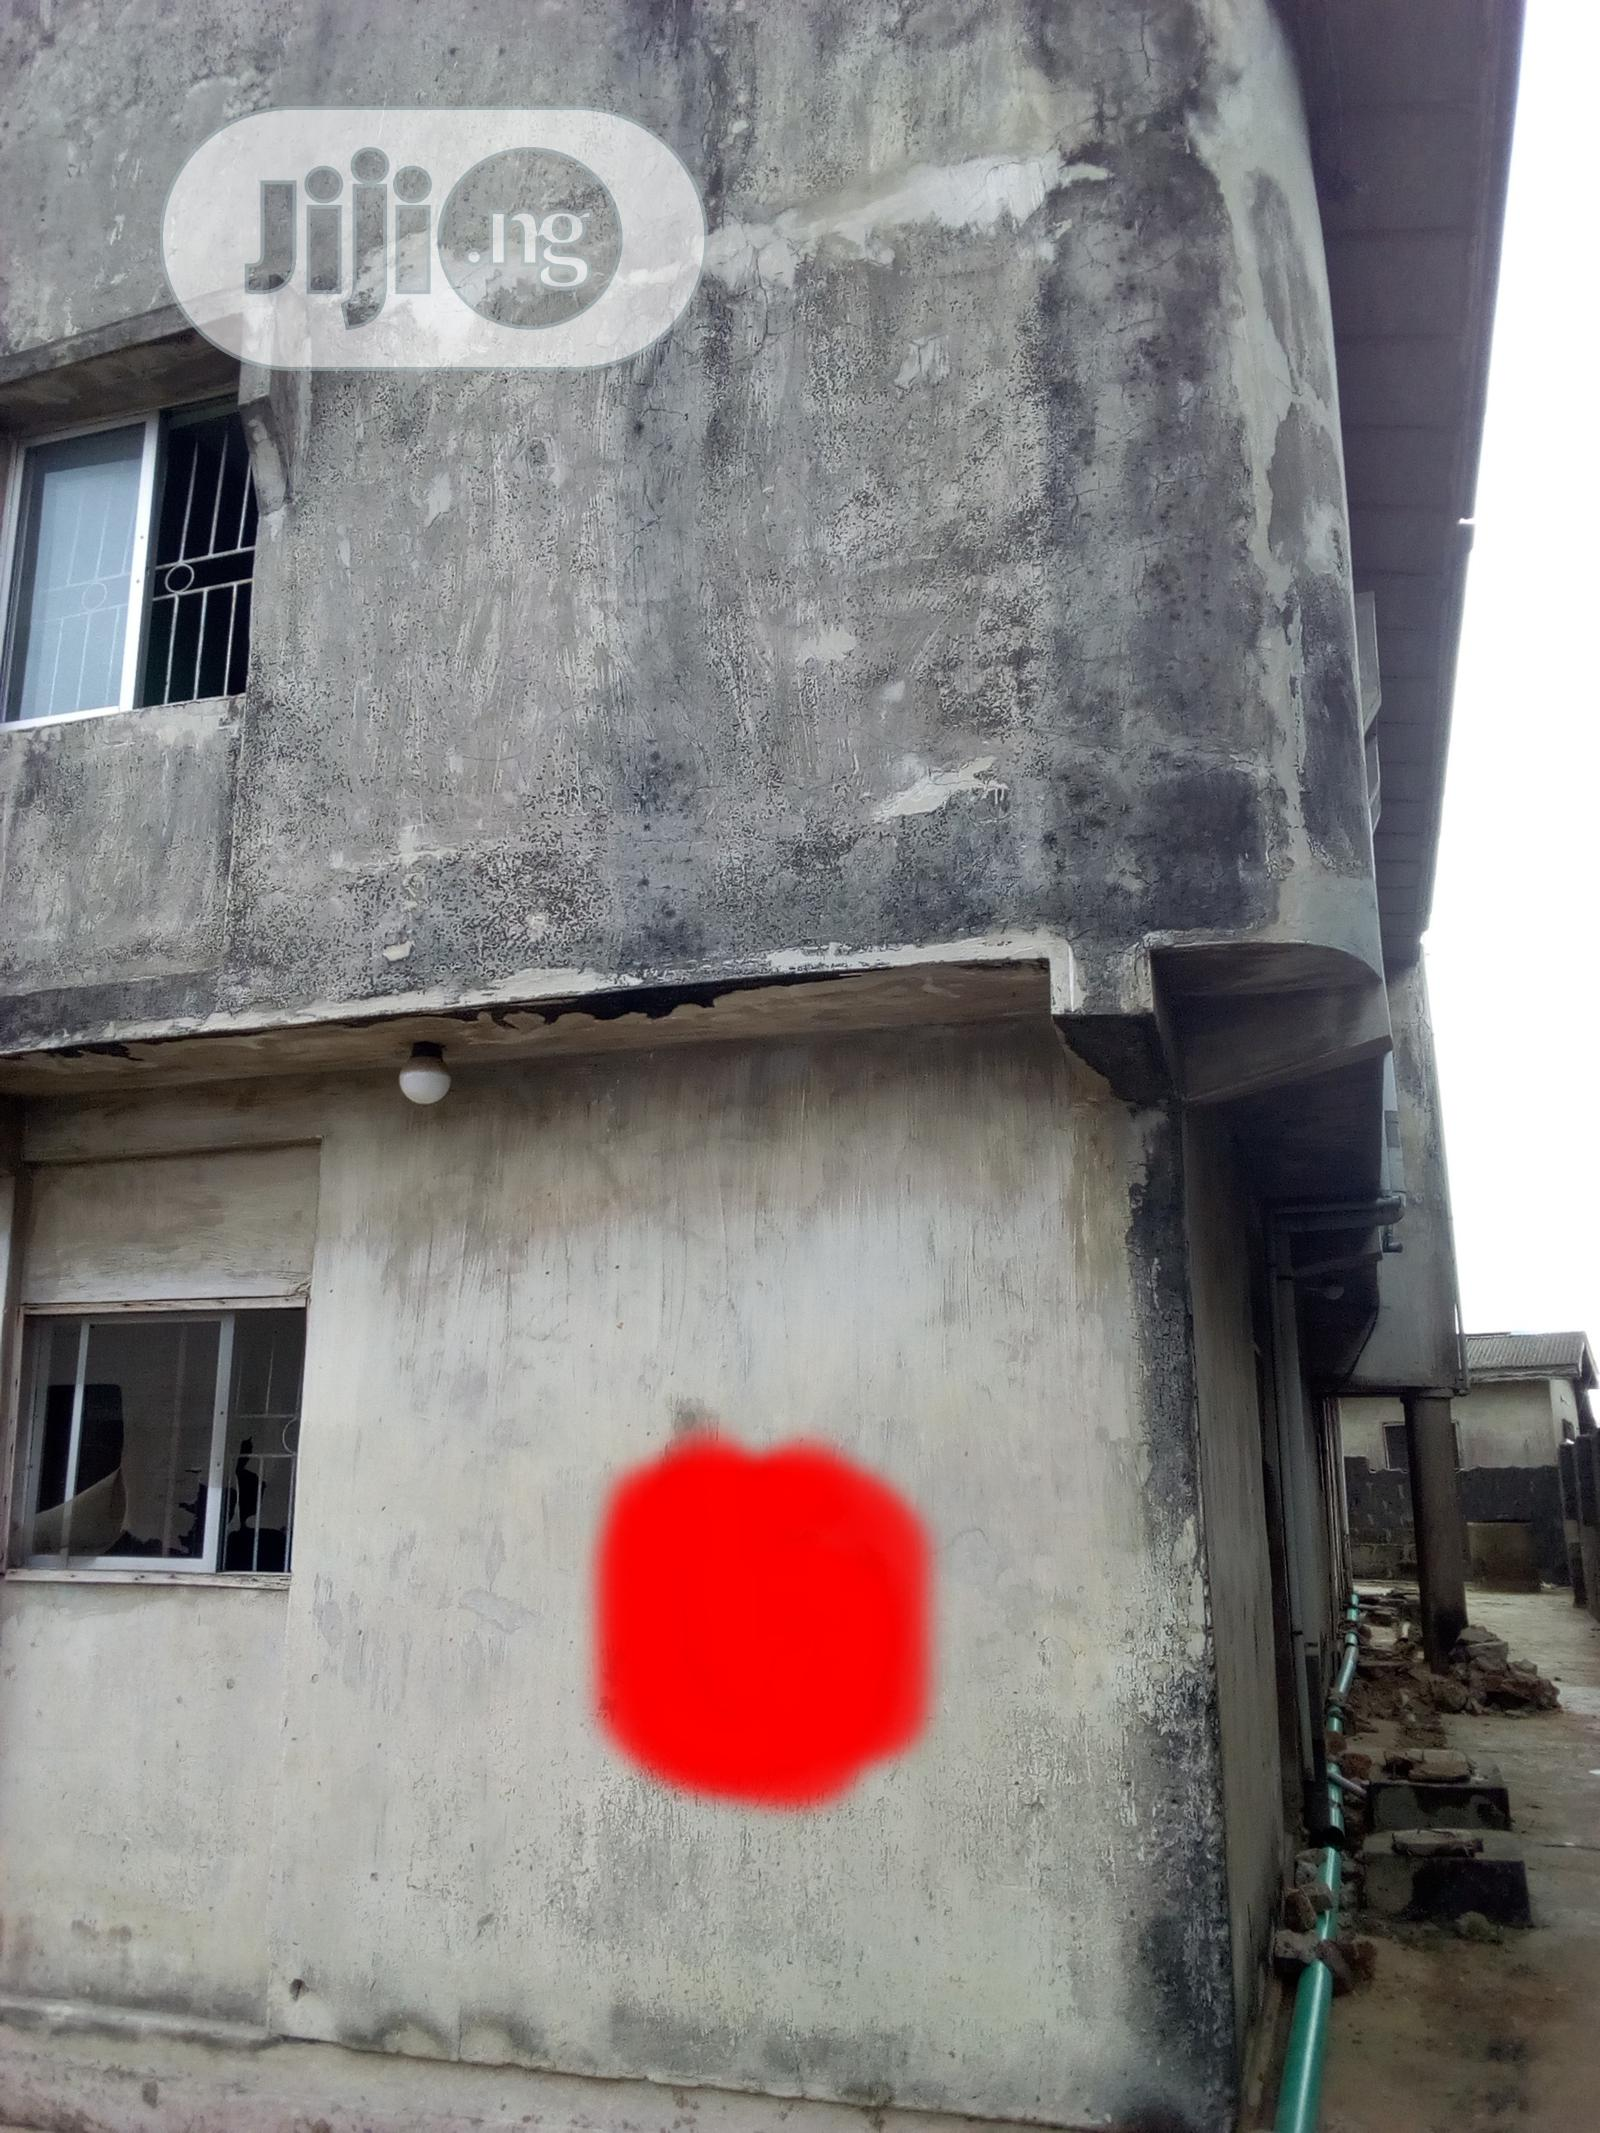 4 Flat For Sale, 3 Bed Room Flat Into 4units For Sale. | Houses & Apartments For Sale for sale in Ojo, Lagos State, Nigeria